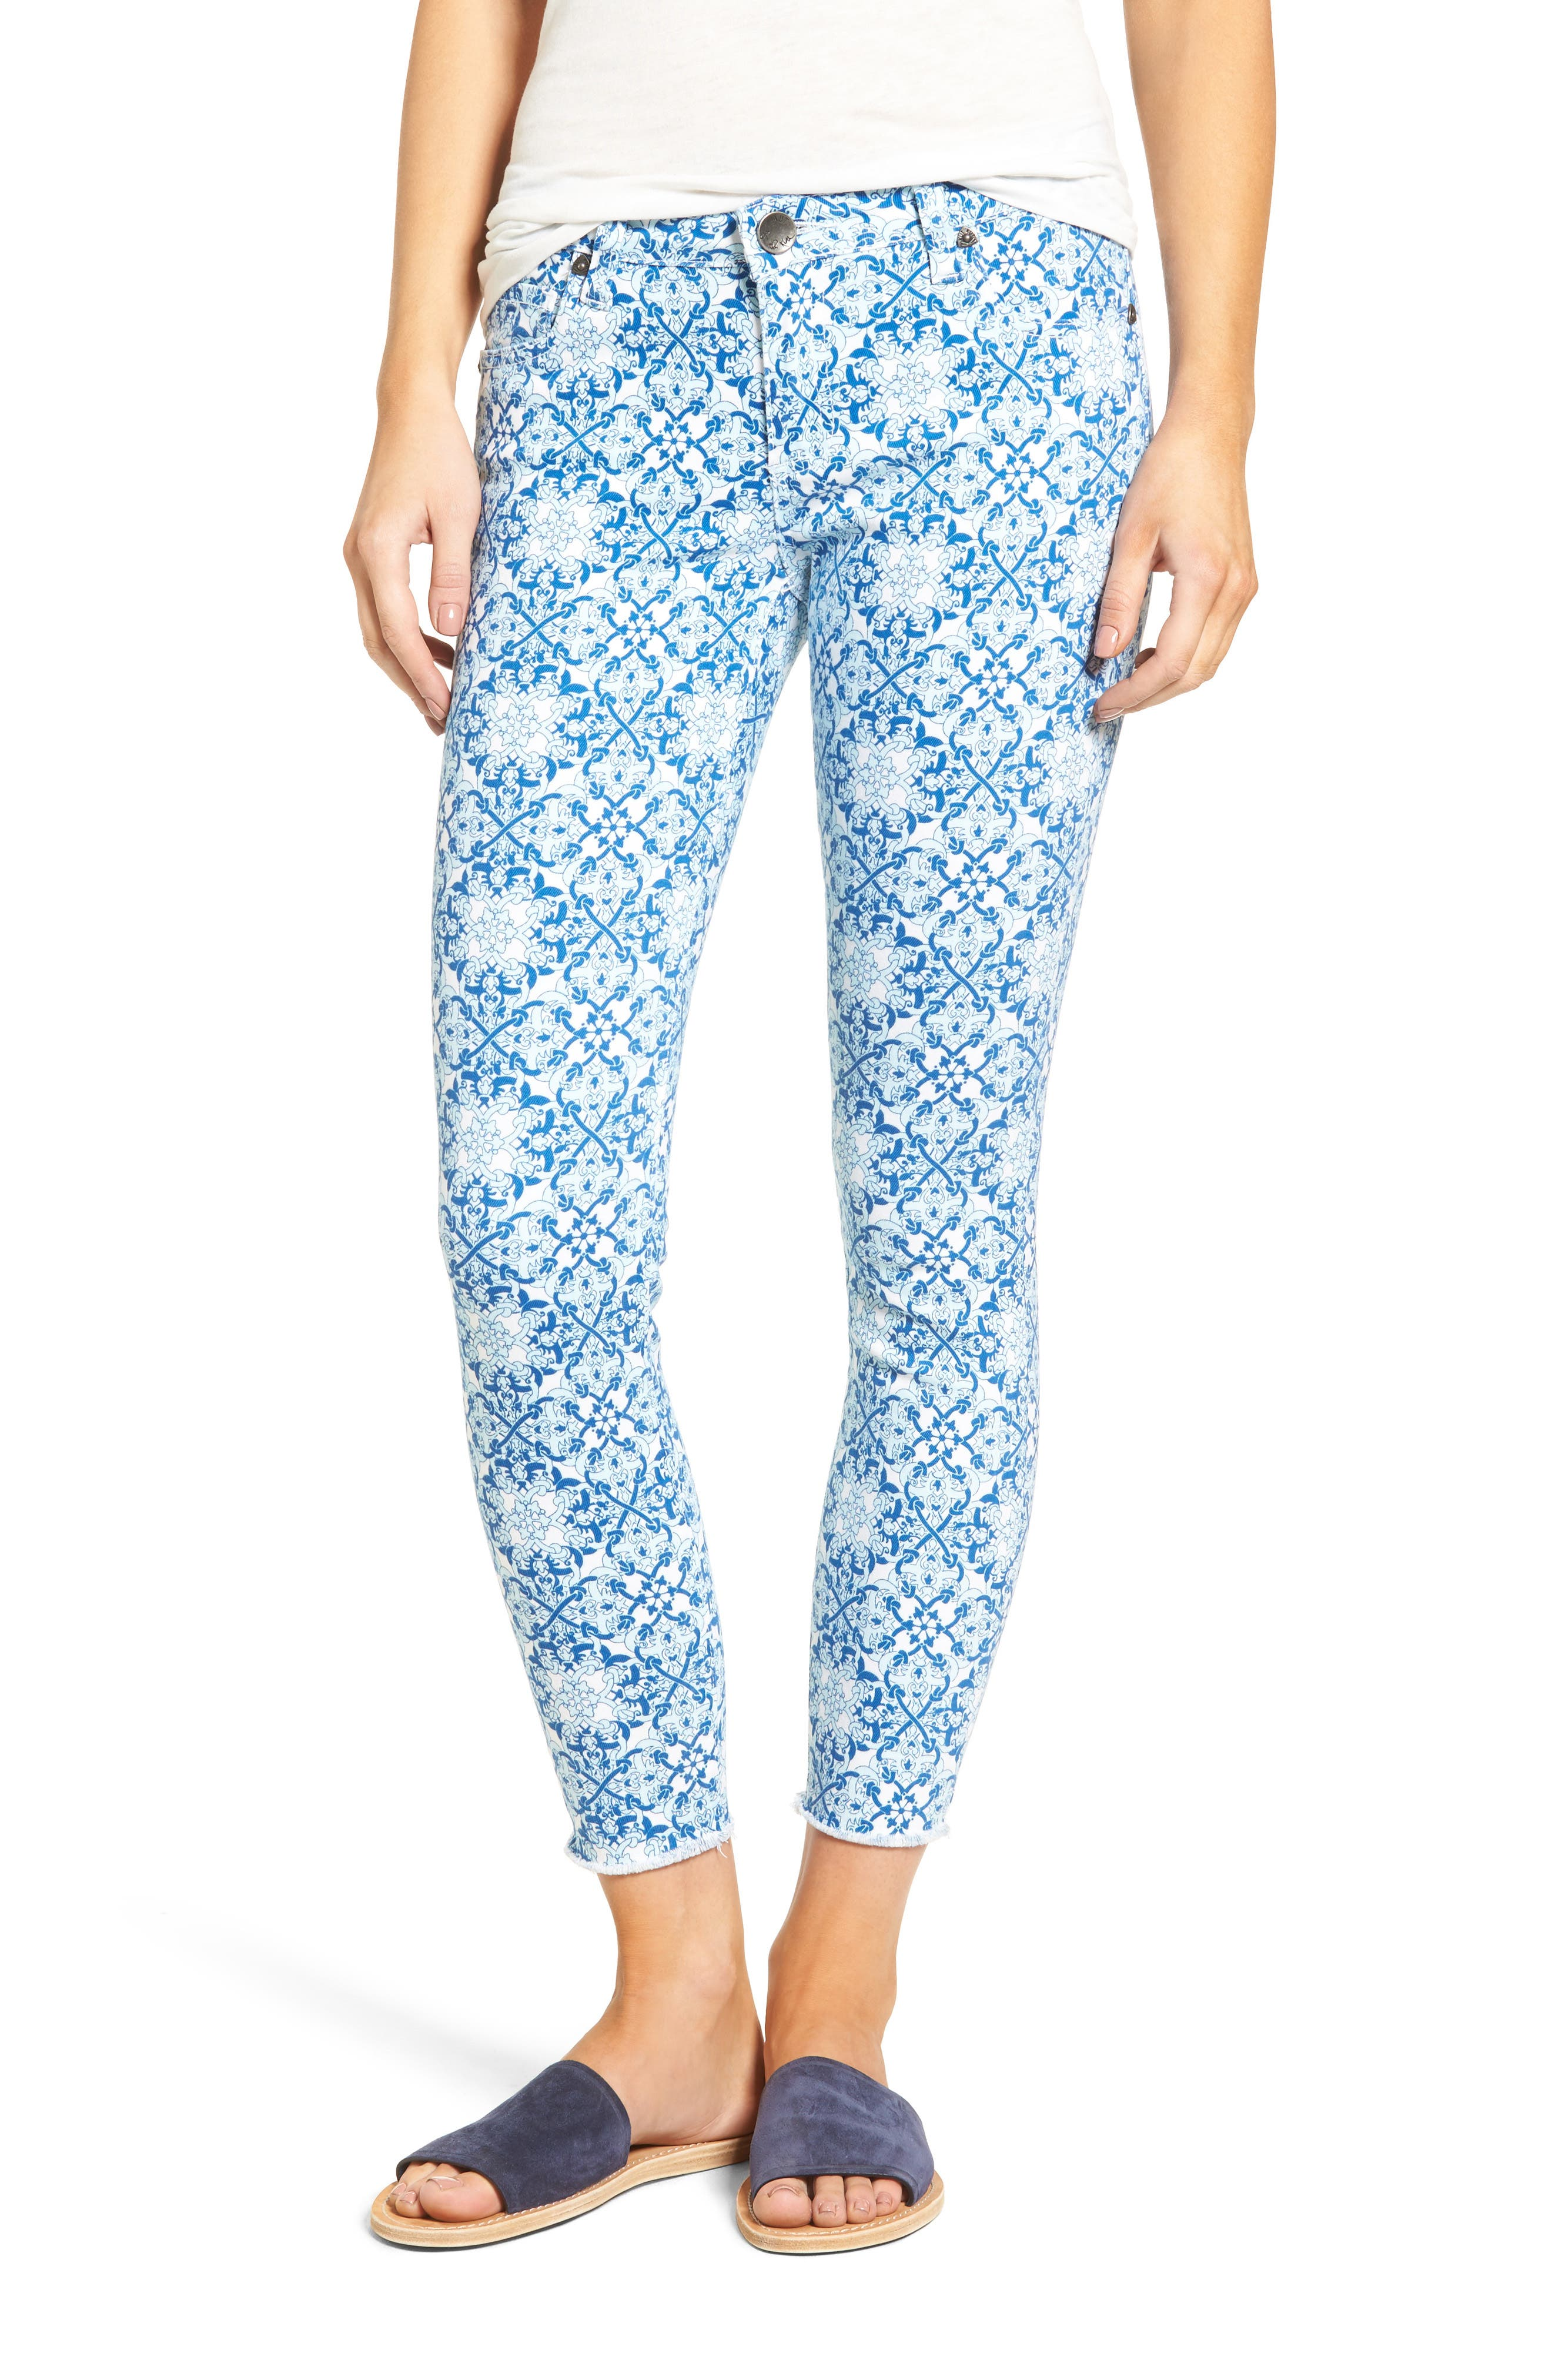 Alternate Image 1 Selected - KUT from the Kloth Connie Print Fray Hem Ankle Skinny Jeans (White/Blue)